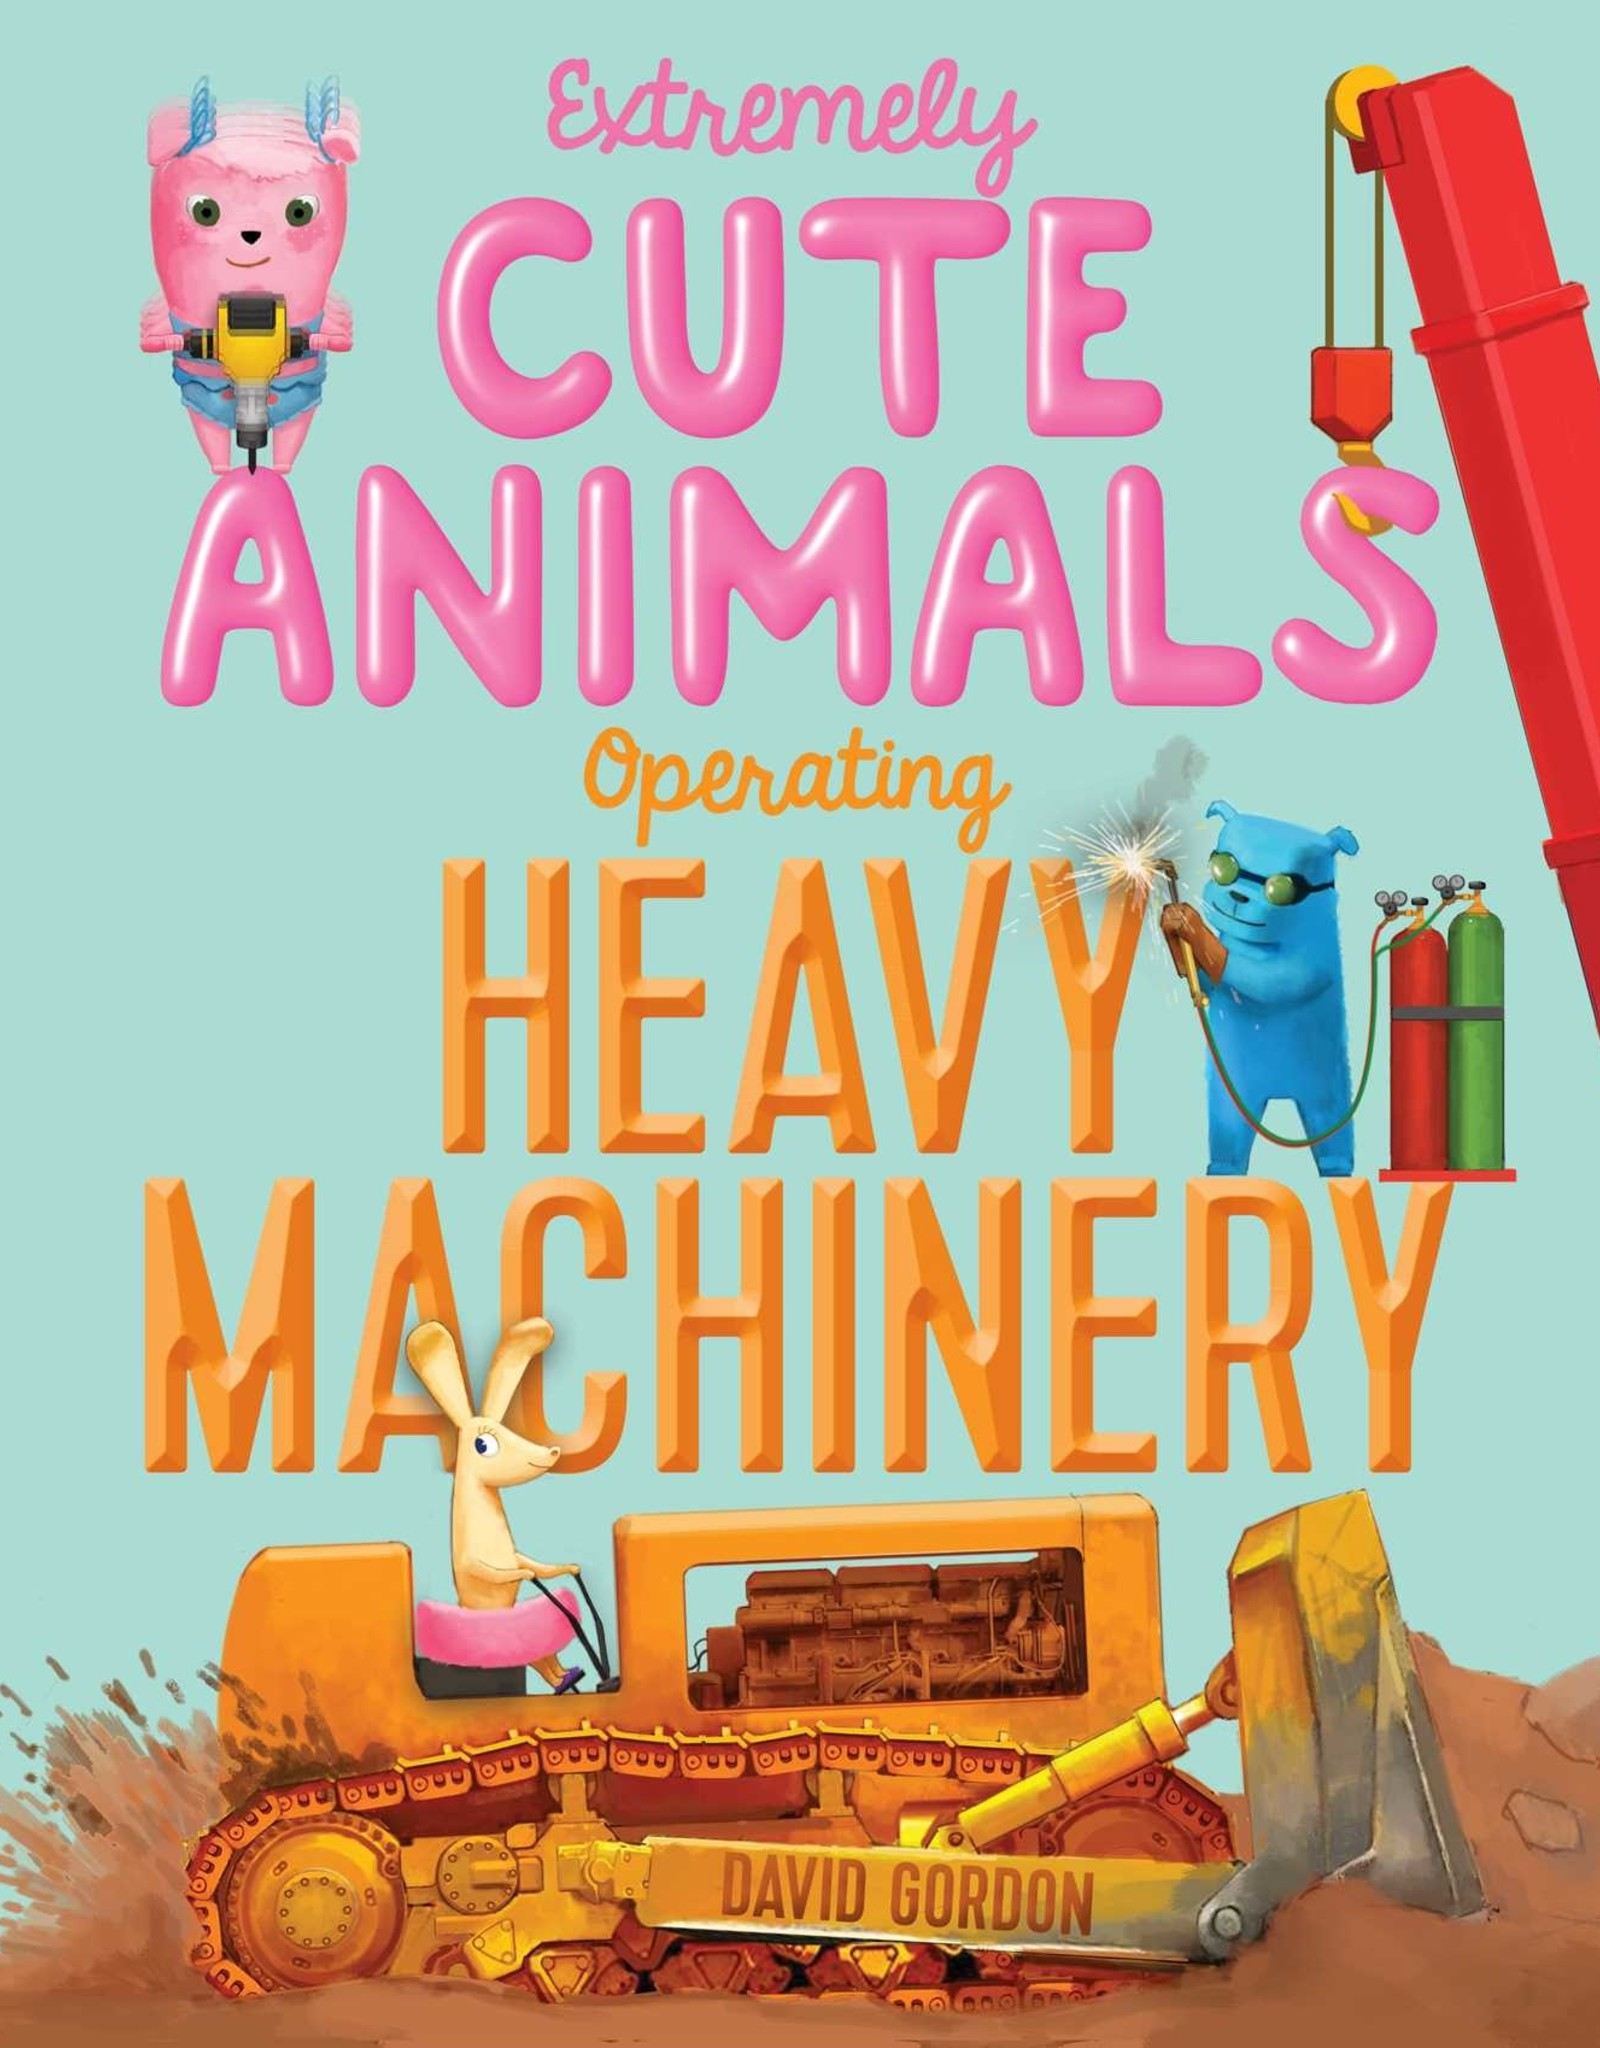 Simon & Schuster Extremely Cute Animals Operating Heavy Machinery